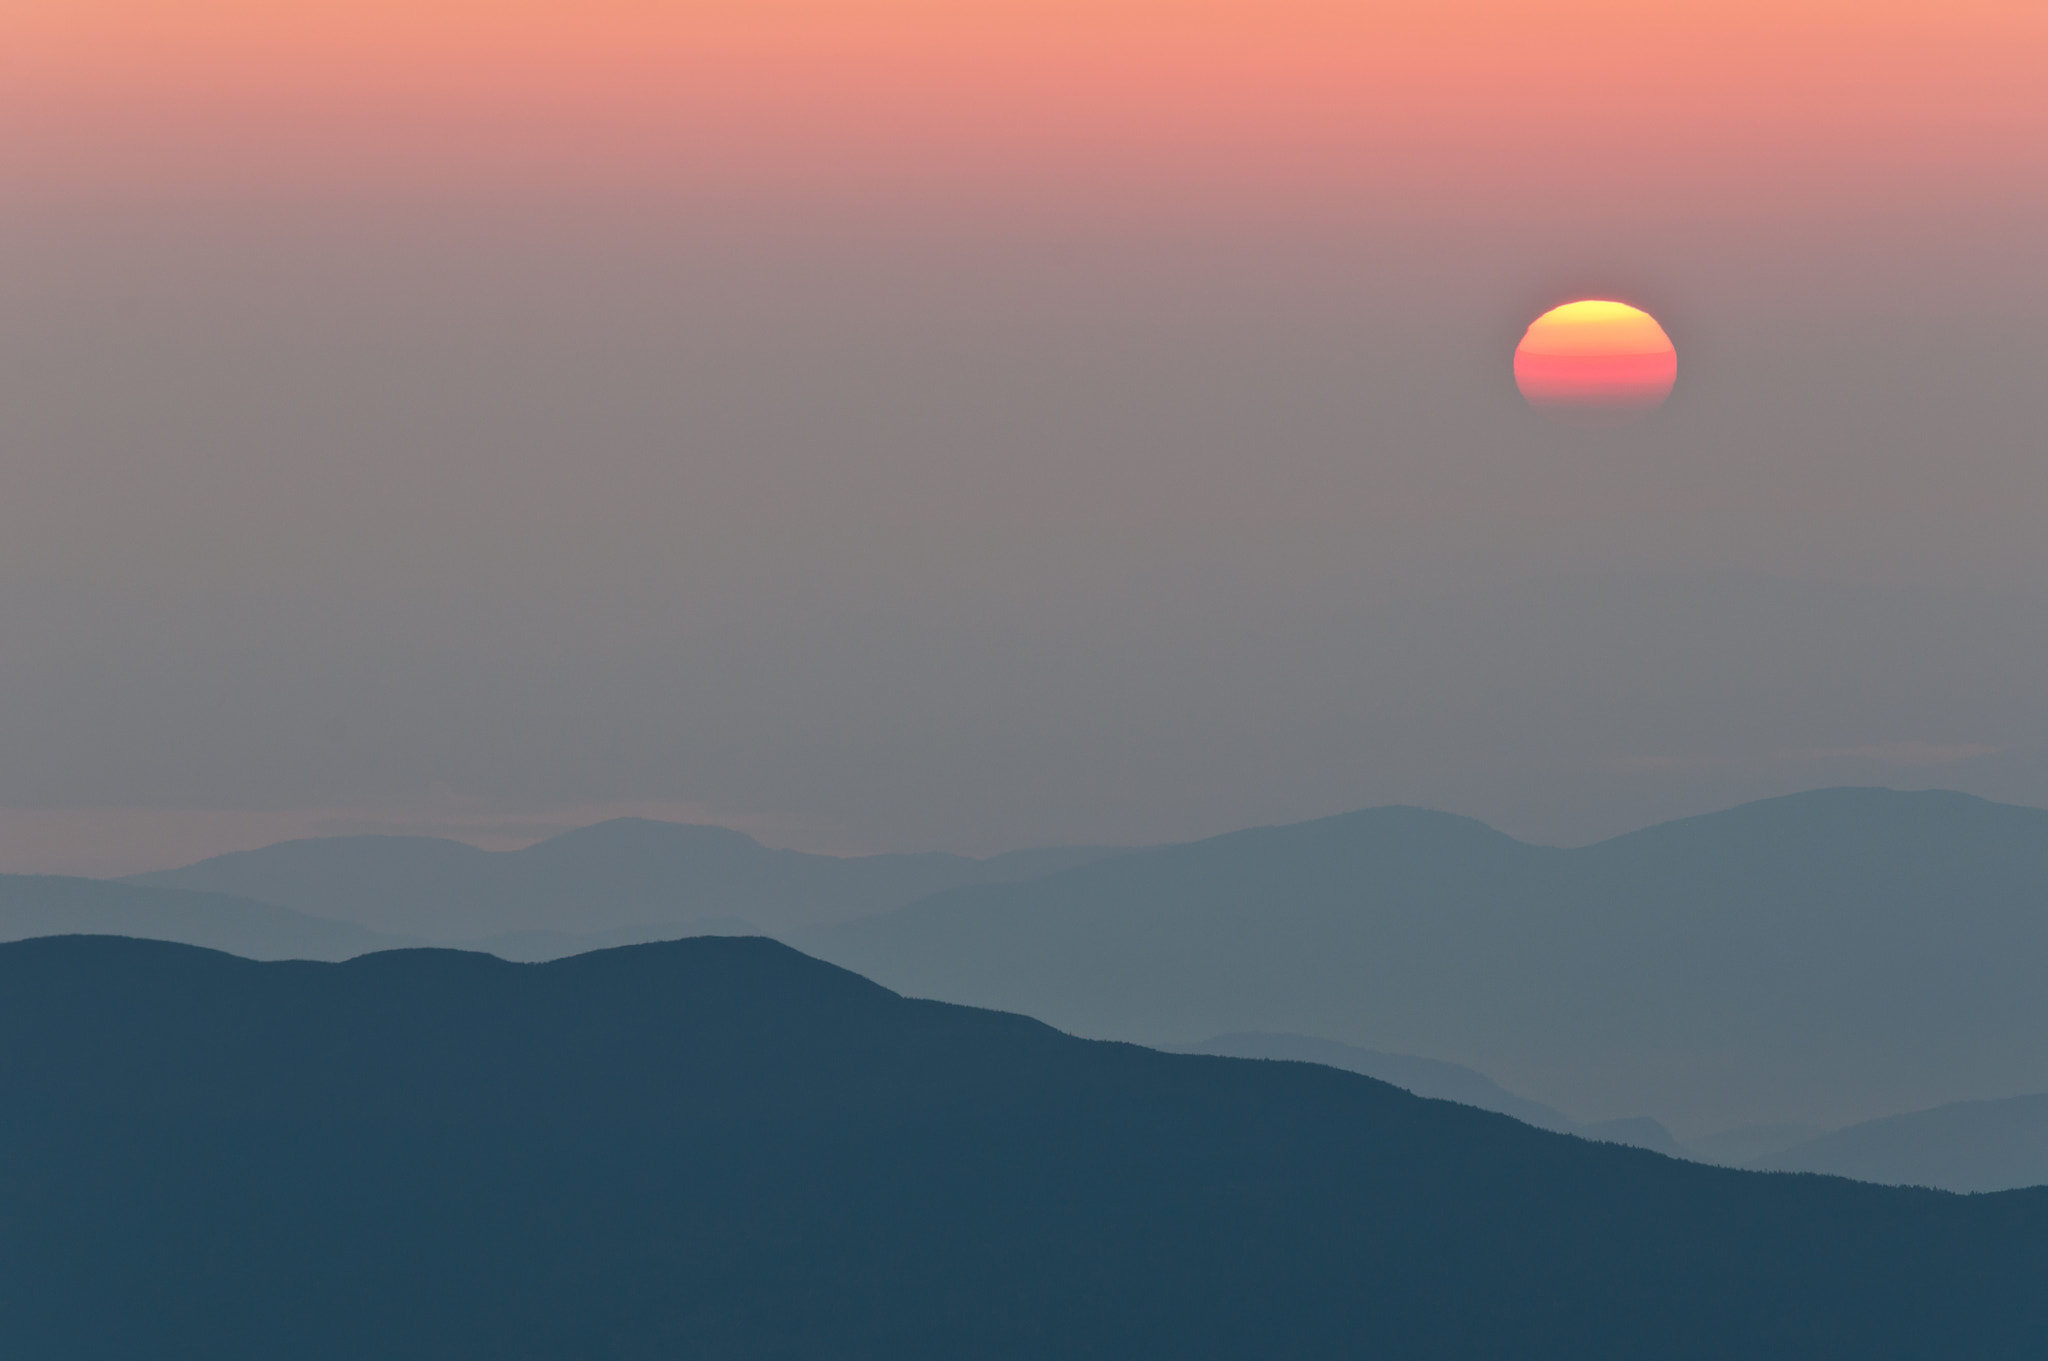 Photograph Sunrise over White Mountains by Lee Costa on 500px